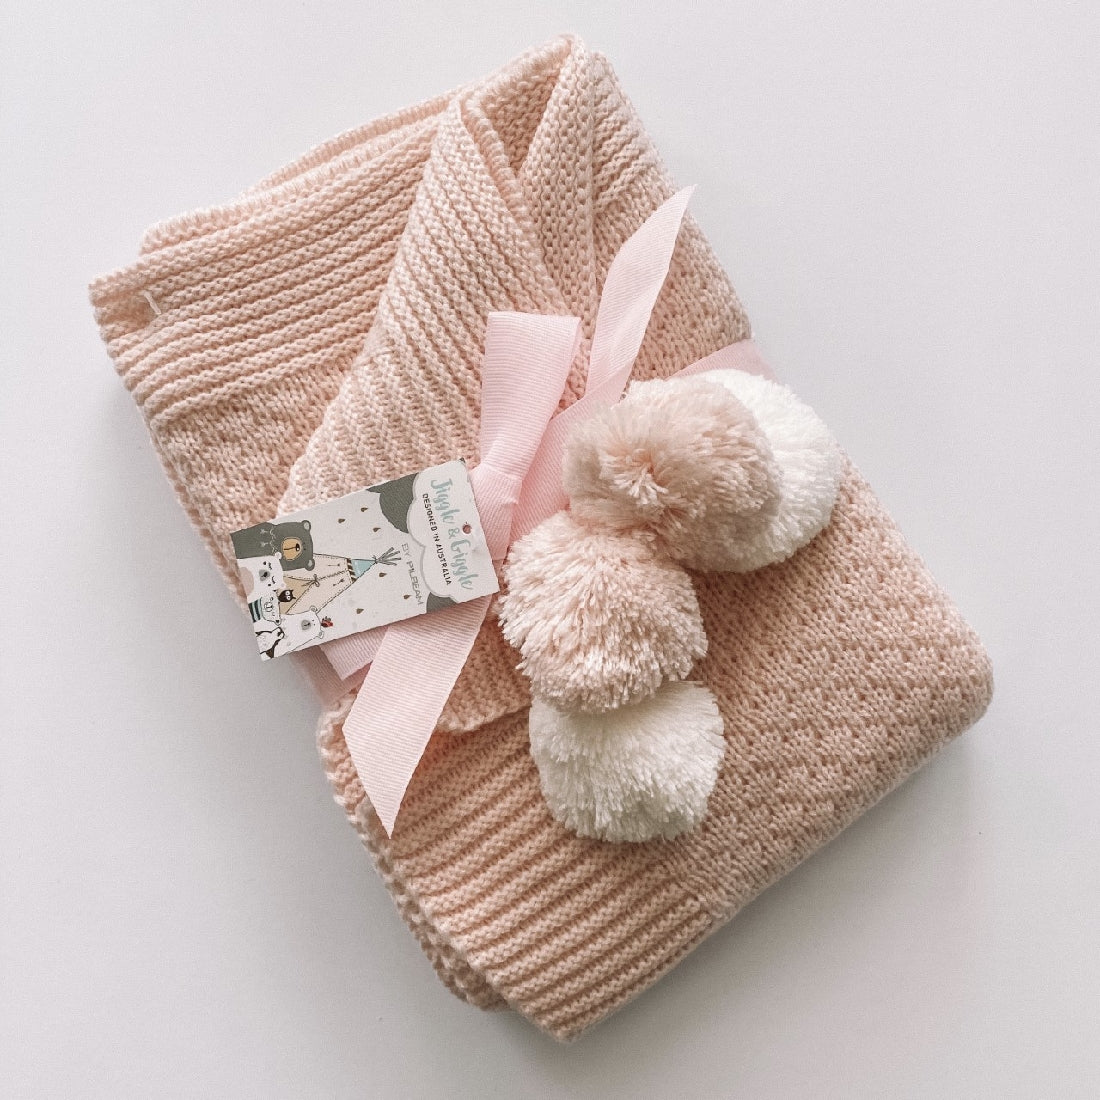 Baby Knit Blanket I Pink with White Pom Poms